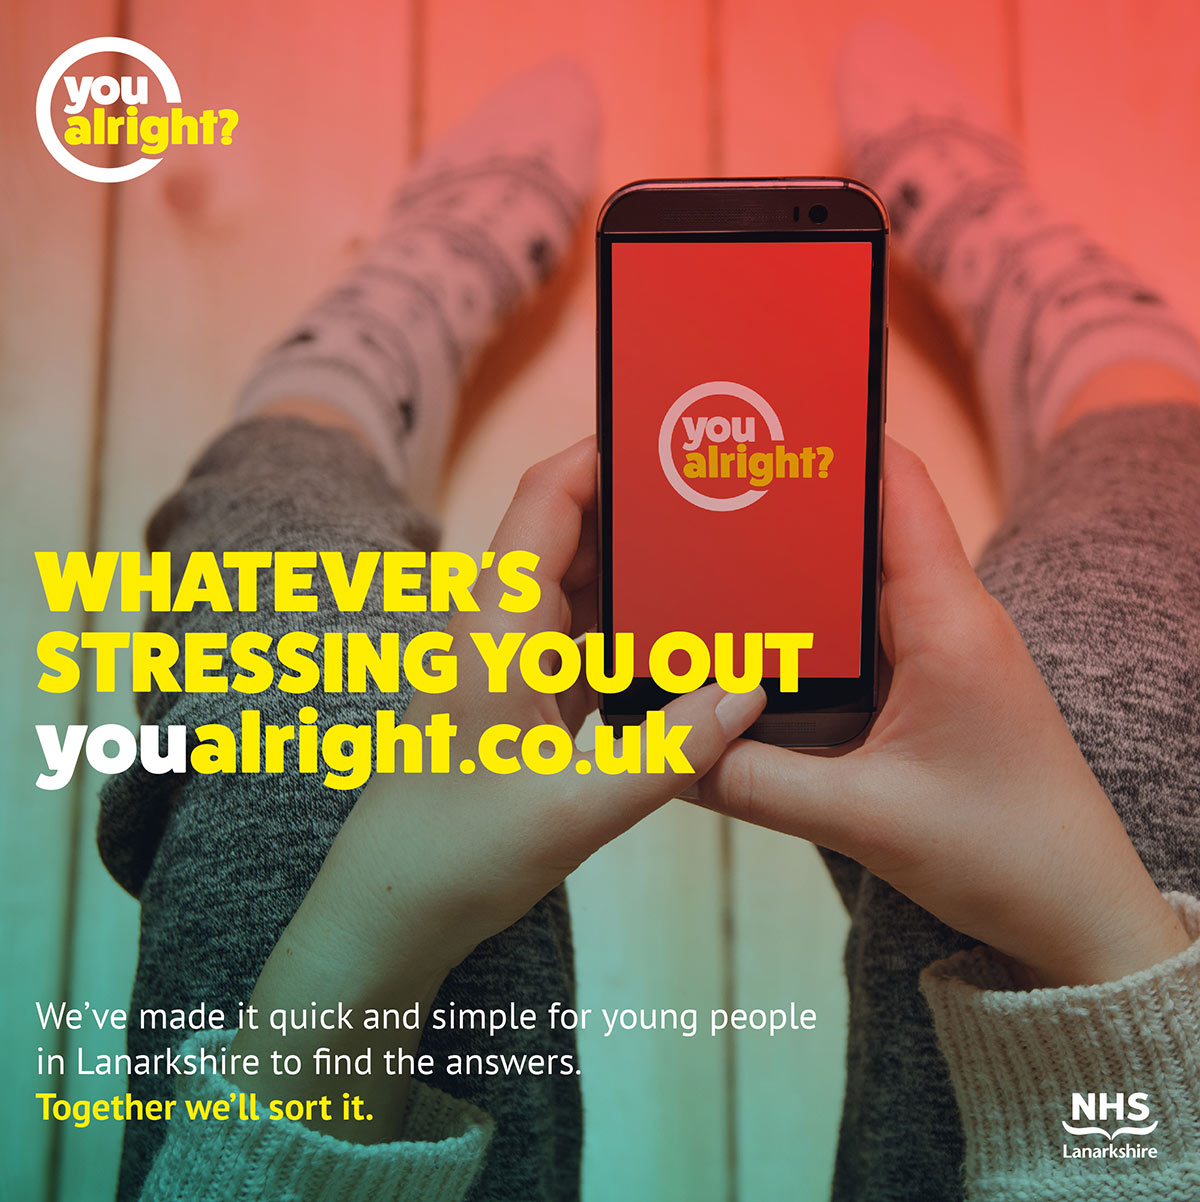 You Alright Poster, image showing a young person viewing the website on a mobile phone. Text reads - Whatever's Stressing You Out youalright.co.uk We've made it quick and simple for young people in Lanarkshire to find the answers. Together we'll sort it.